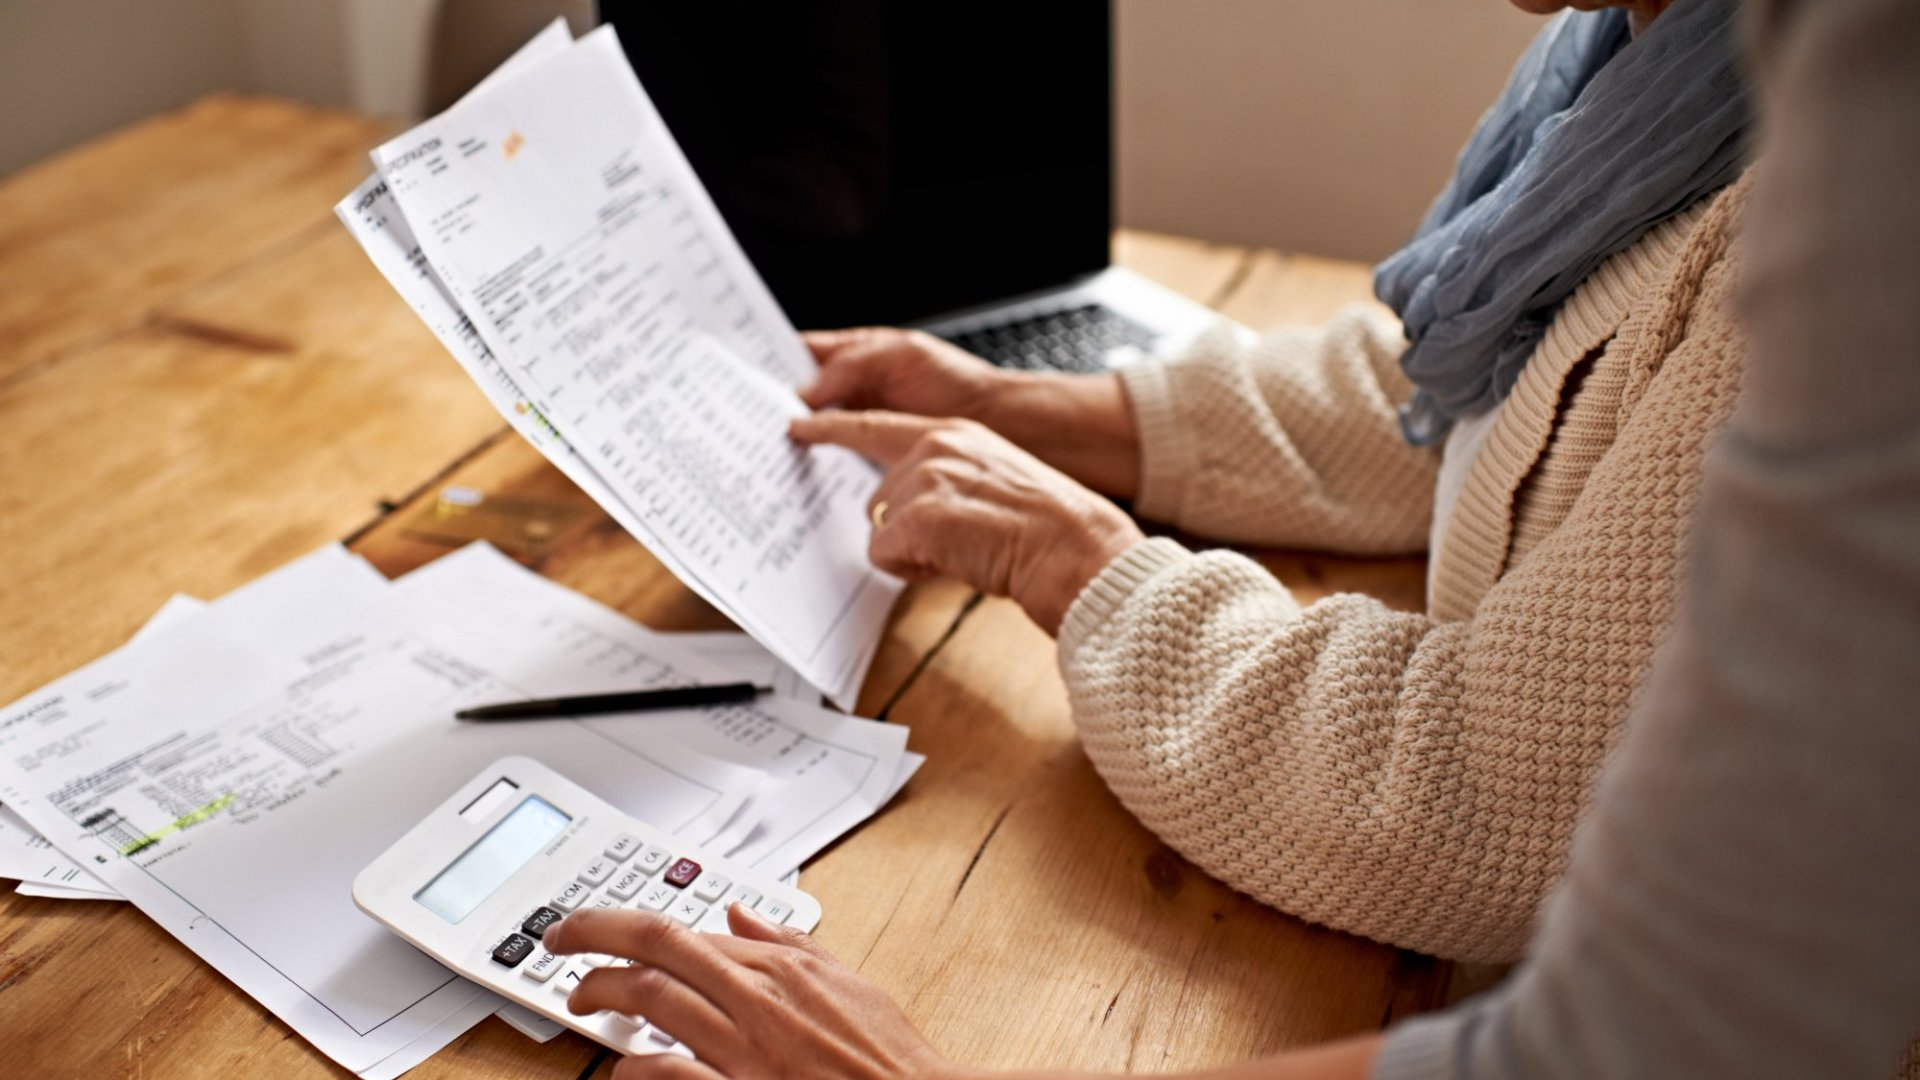 4 Things You Can Do If You Can't Pay the IRS by April 17